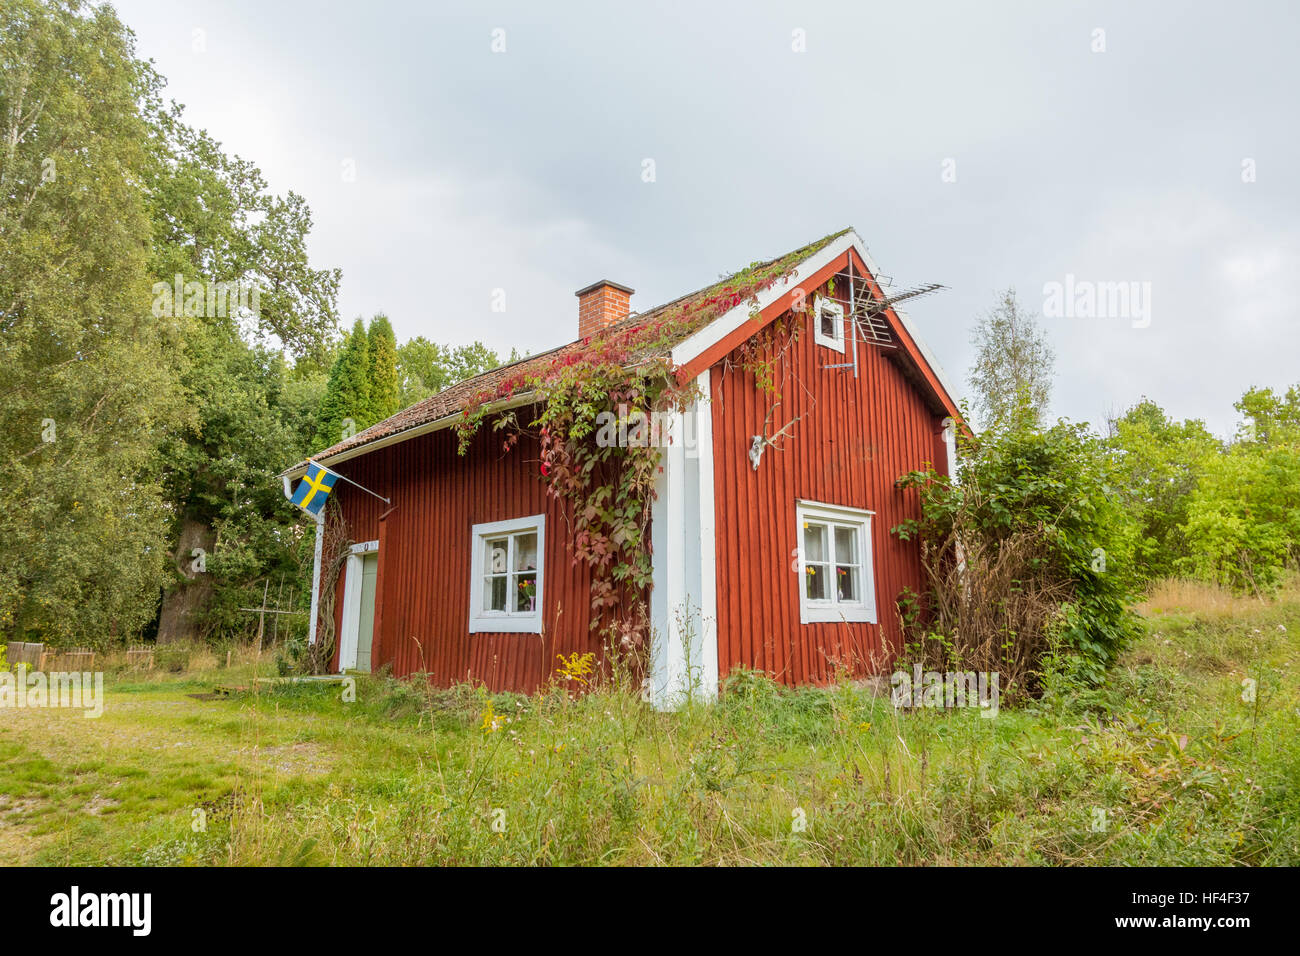 This is a late 17th cetury soldiers house, part of the Swedish military croft system that was in use until  begining - Stock Image